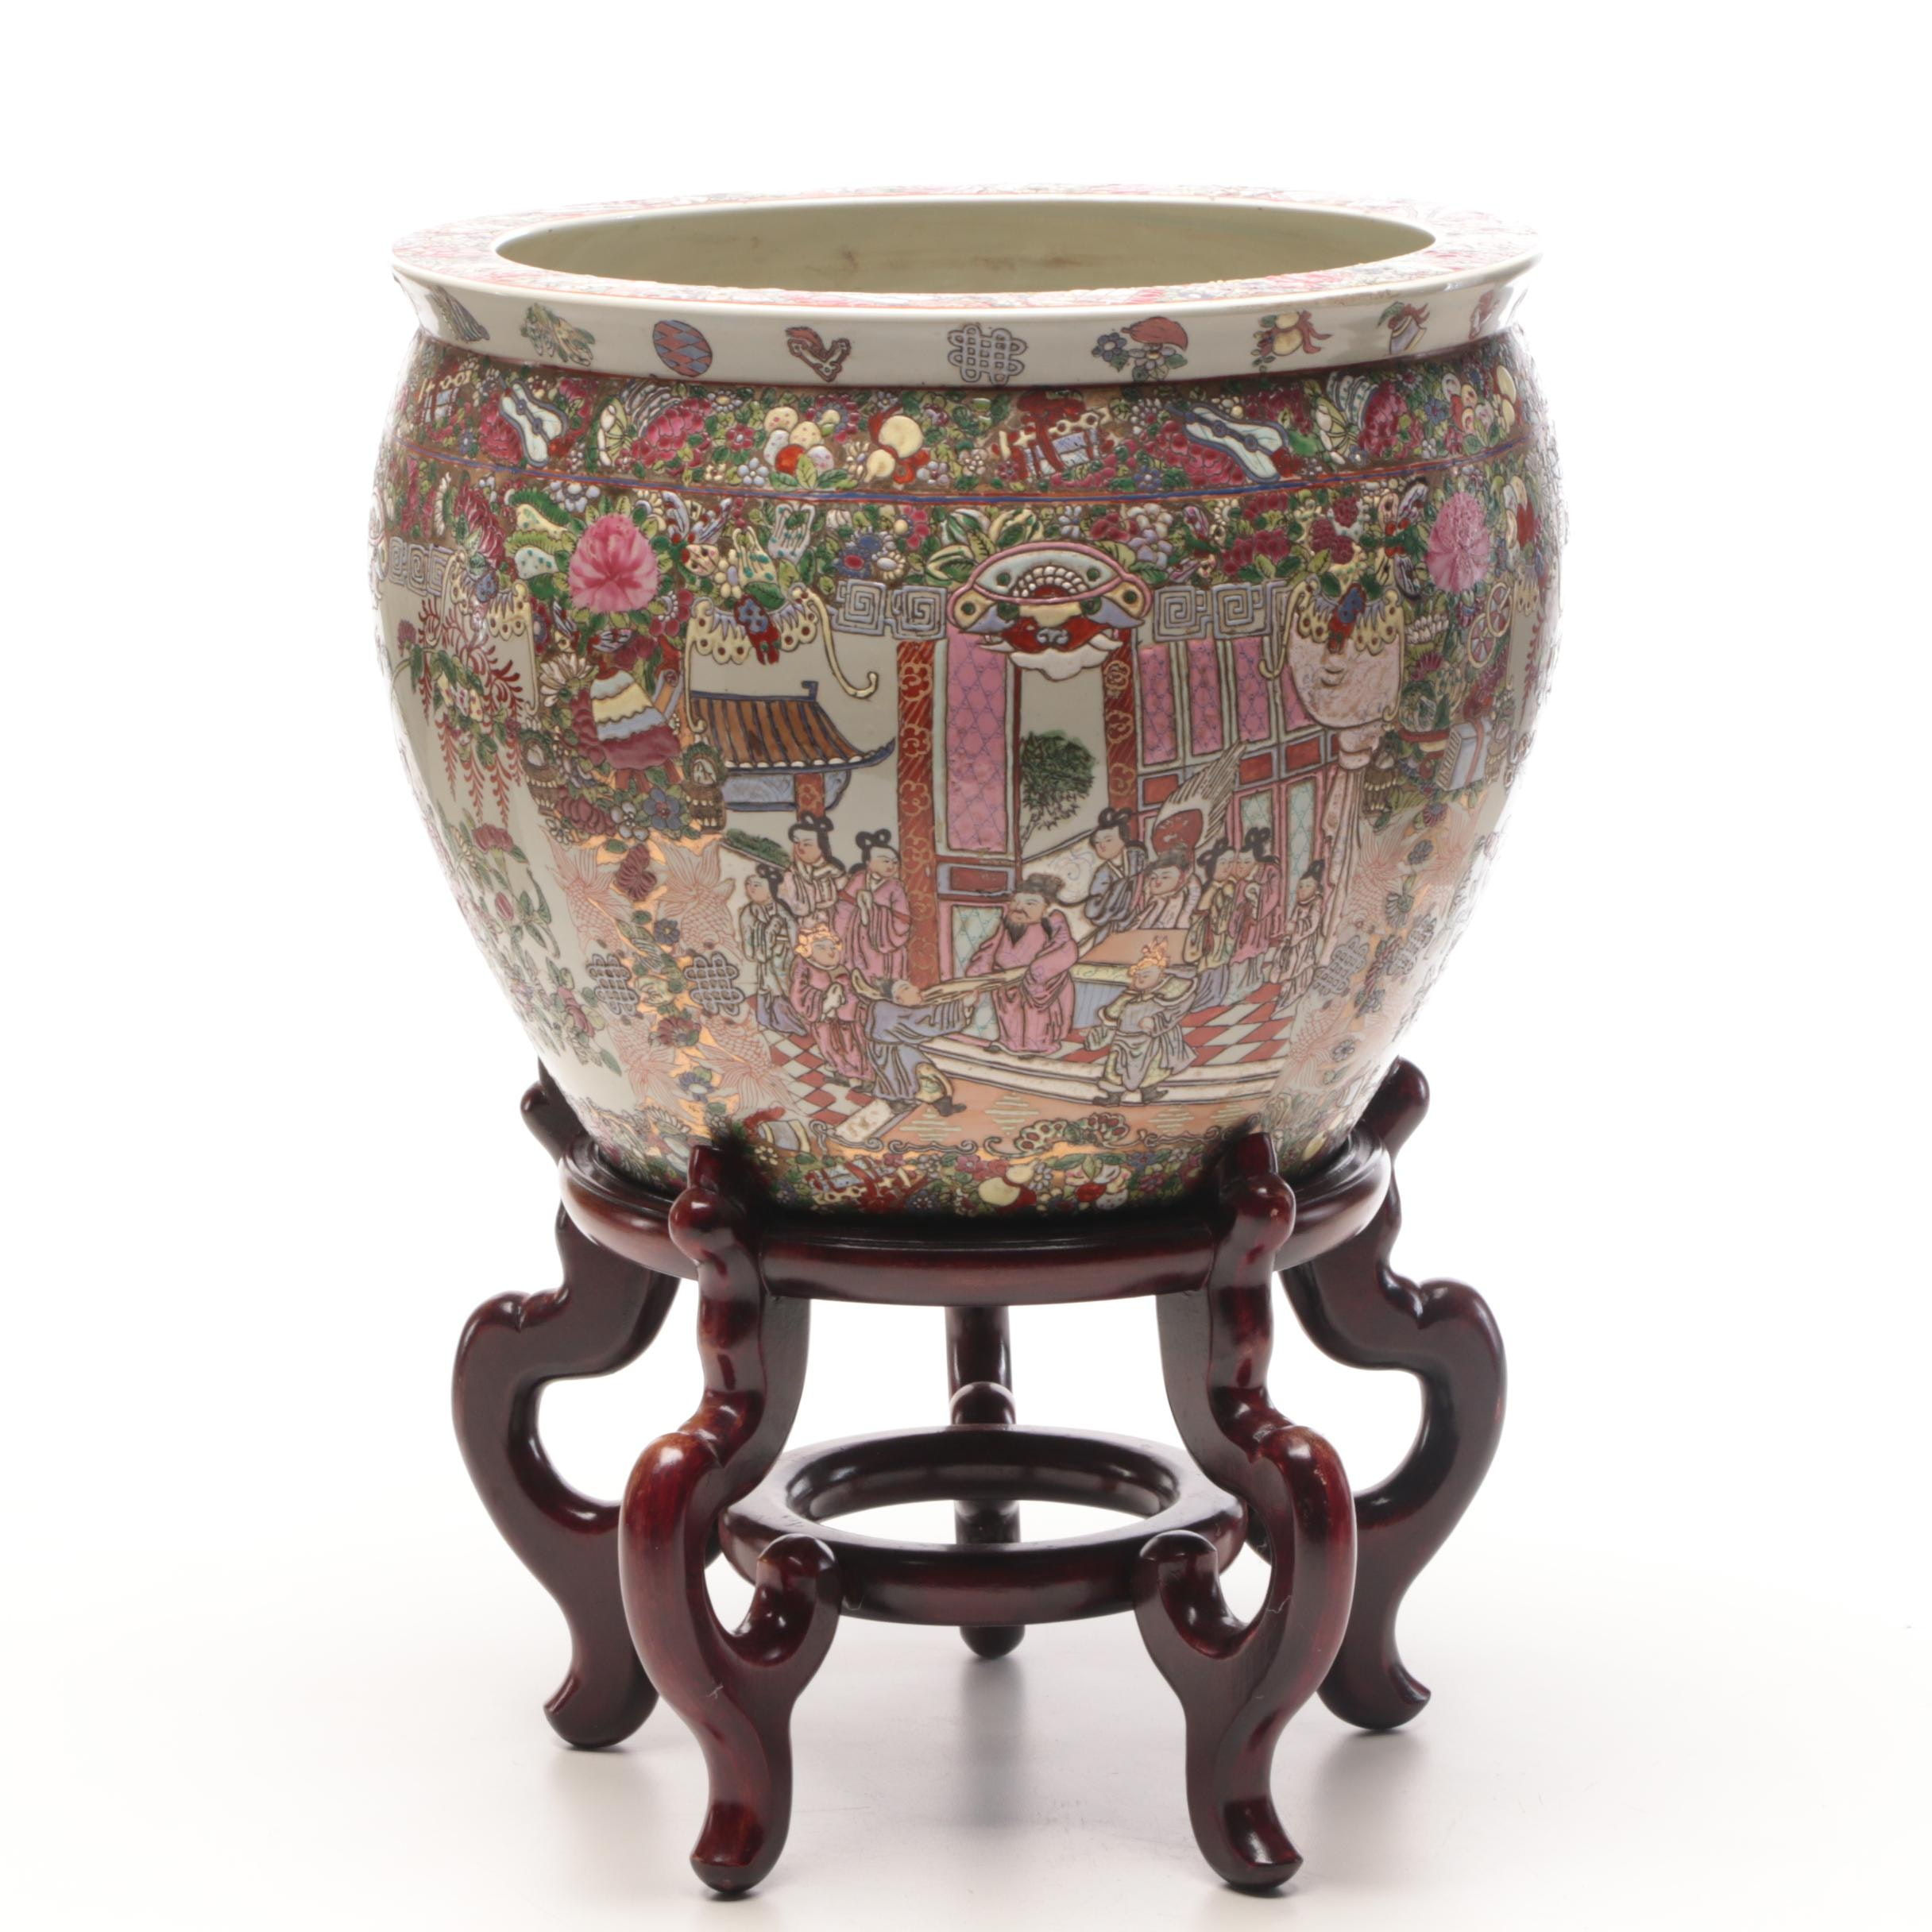 Chinese Hand-Decorated Ceramic Planter with Stand